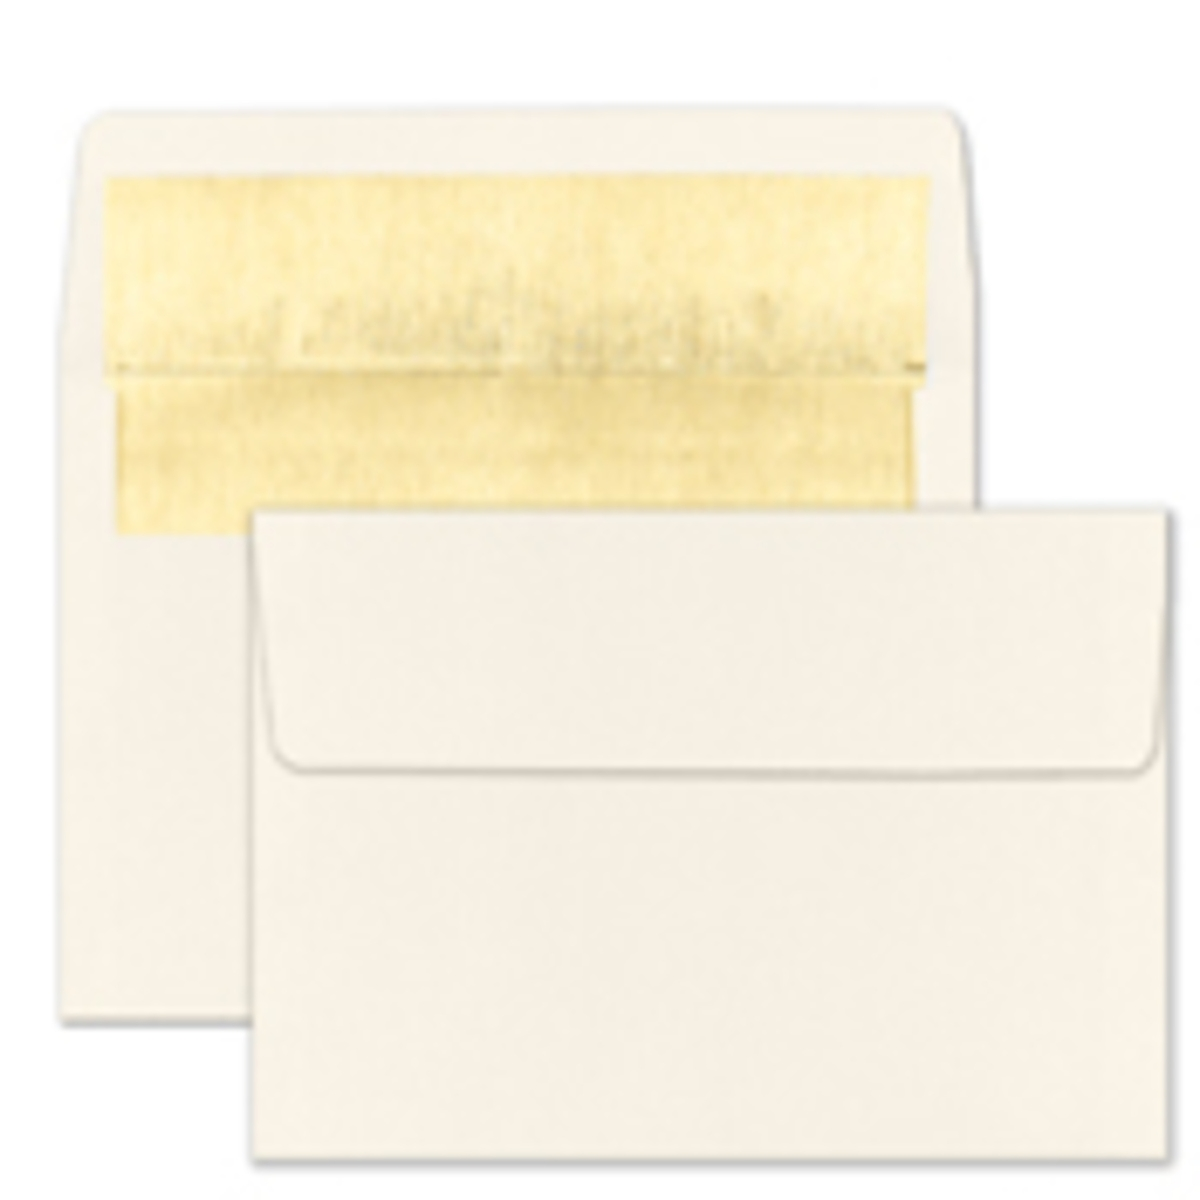 Recycled Shiny Gold Foil Lined Ecru Envelope - Blank